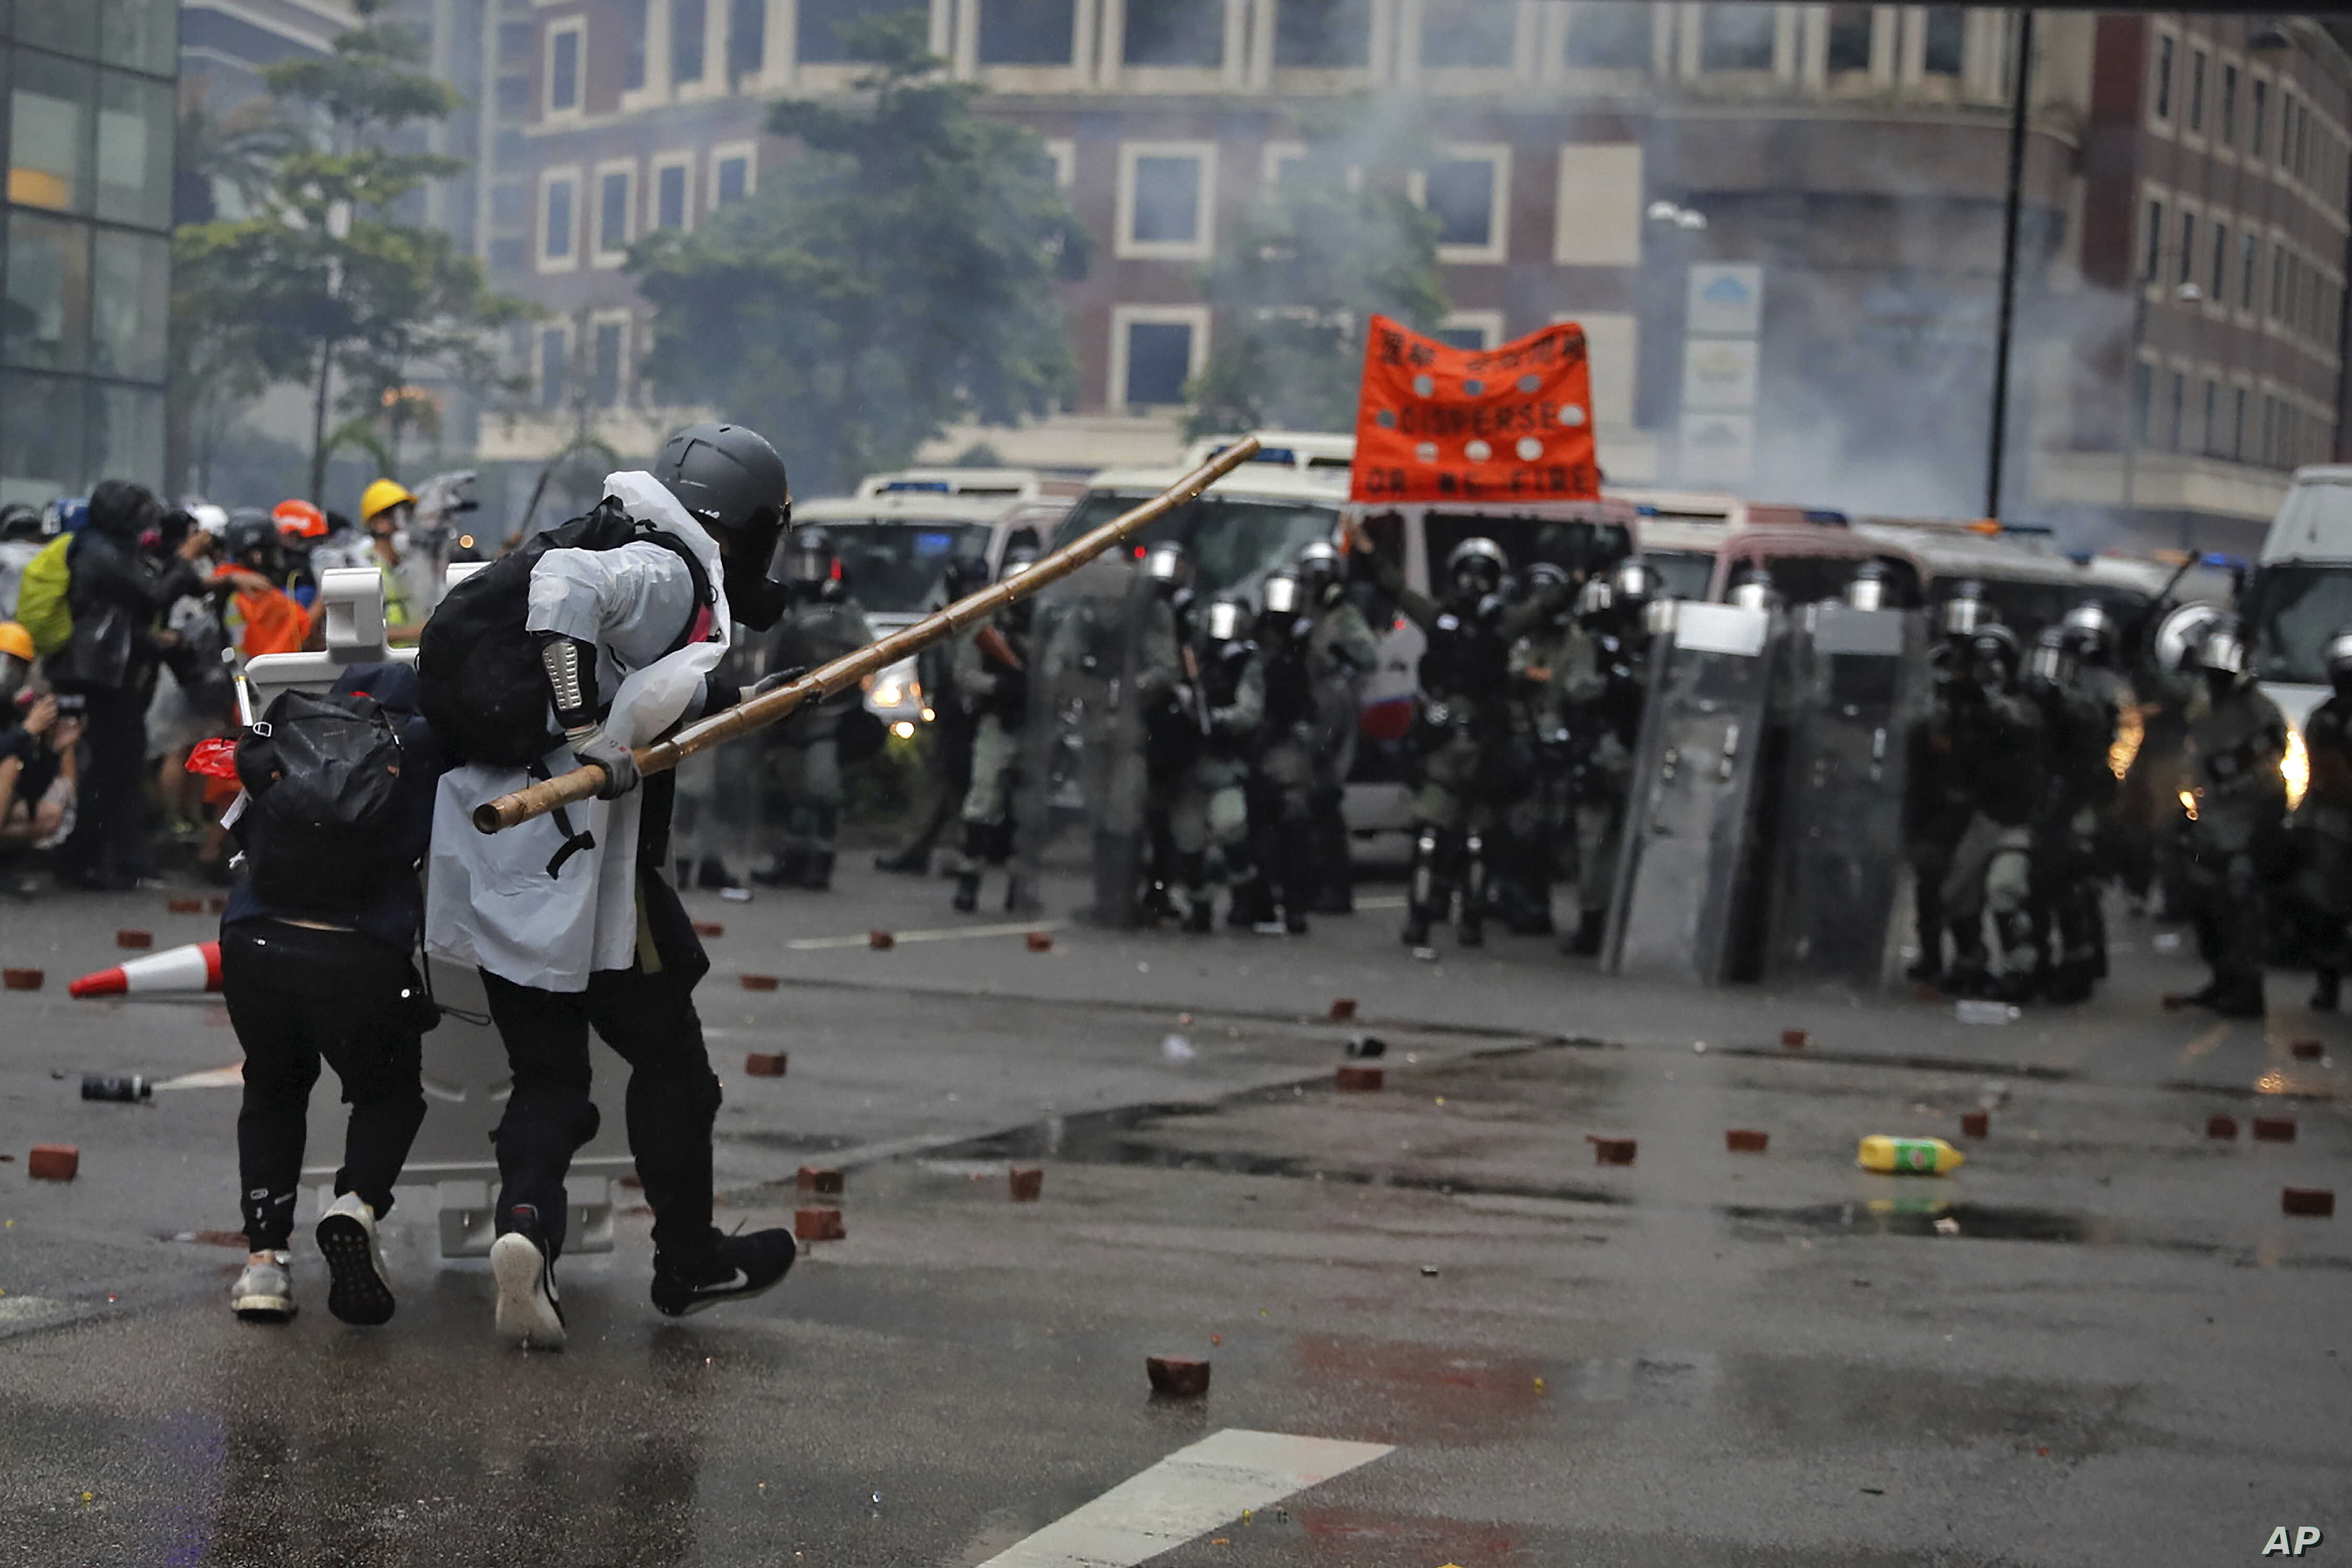 Now or Never': Hong Kong Protesters Say They Have Nothing to Lose ...